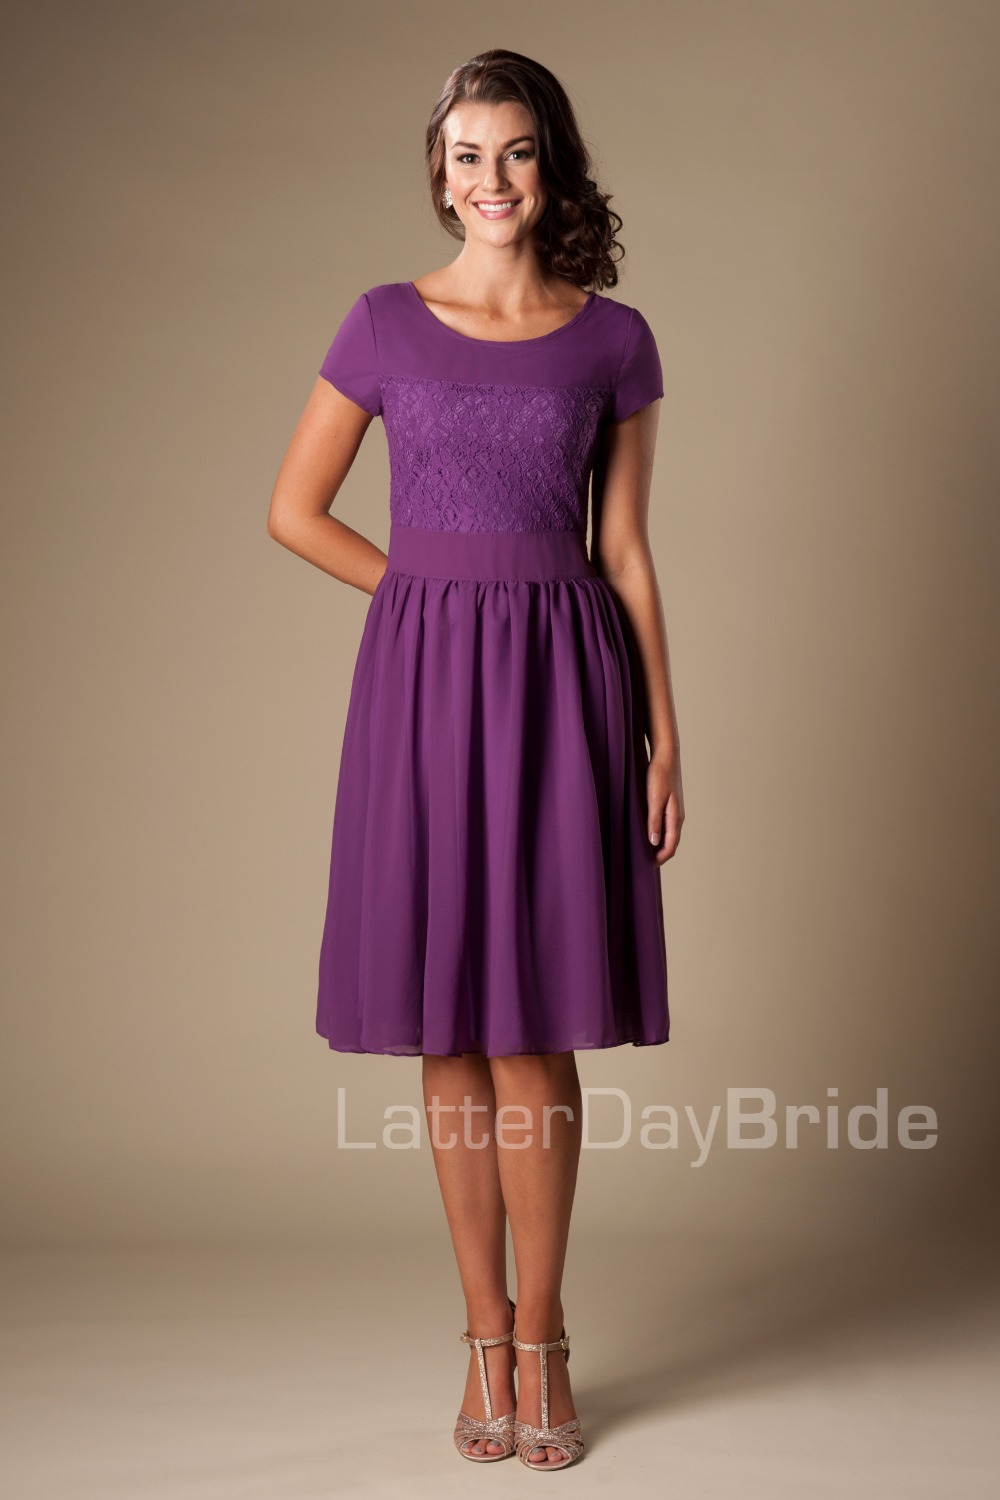 Purple Short Modest   Bridesmaid     Dresses   With Sleeves Lace Chiffon Maids of Honor   Dresses   A-line Knee Length Wedding Party Gowns